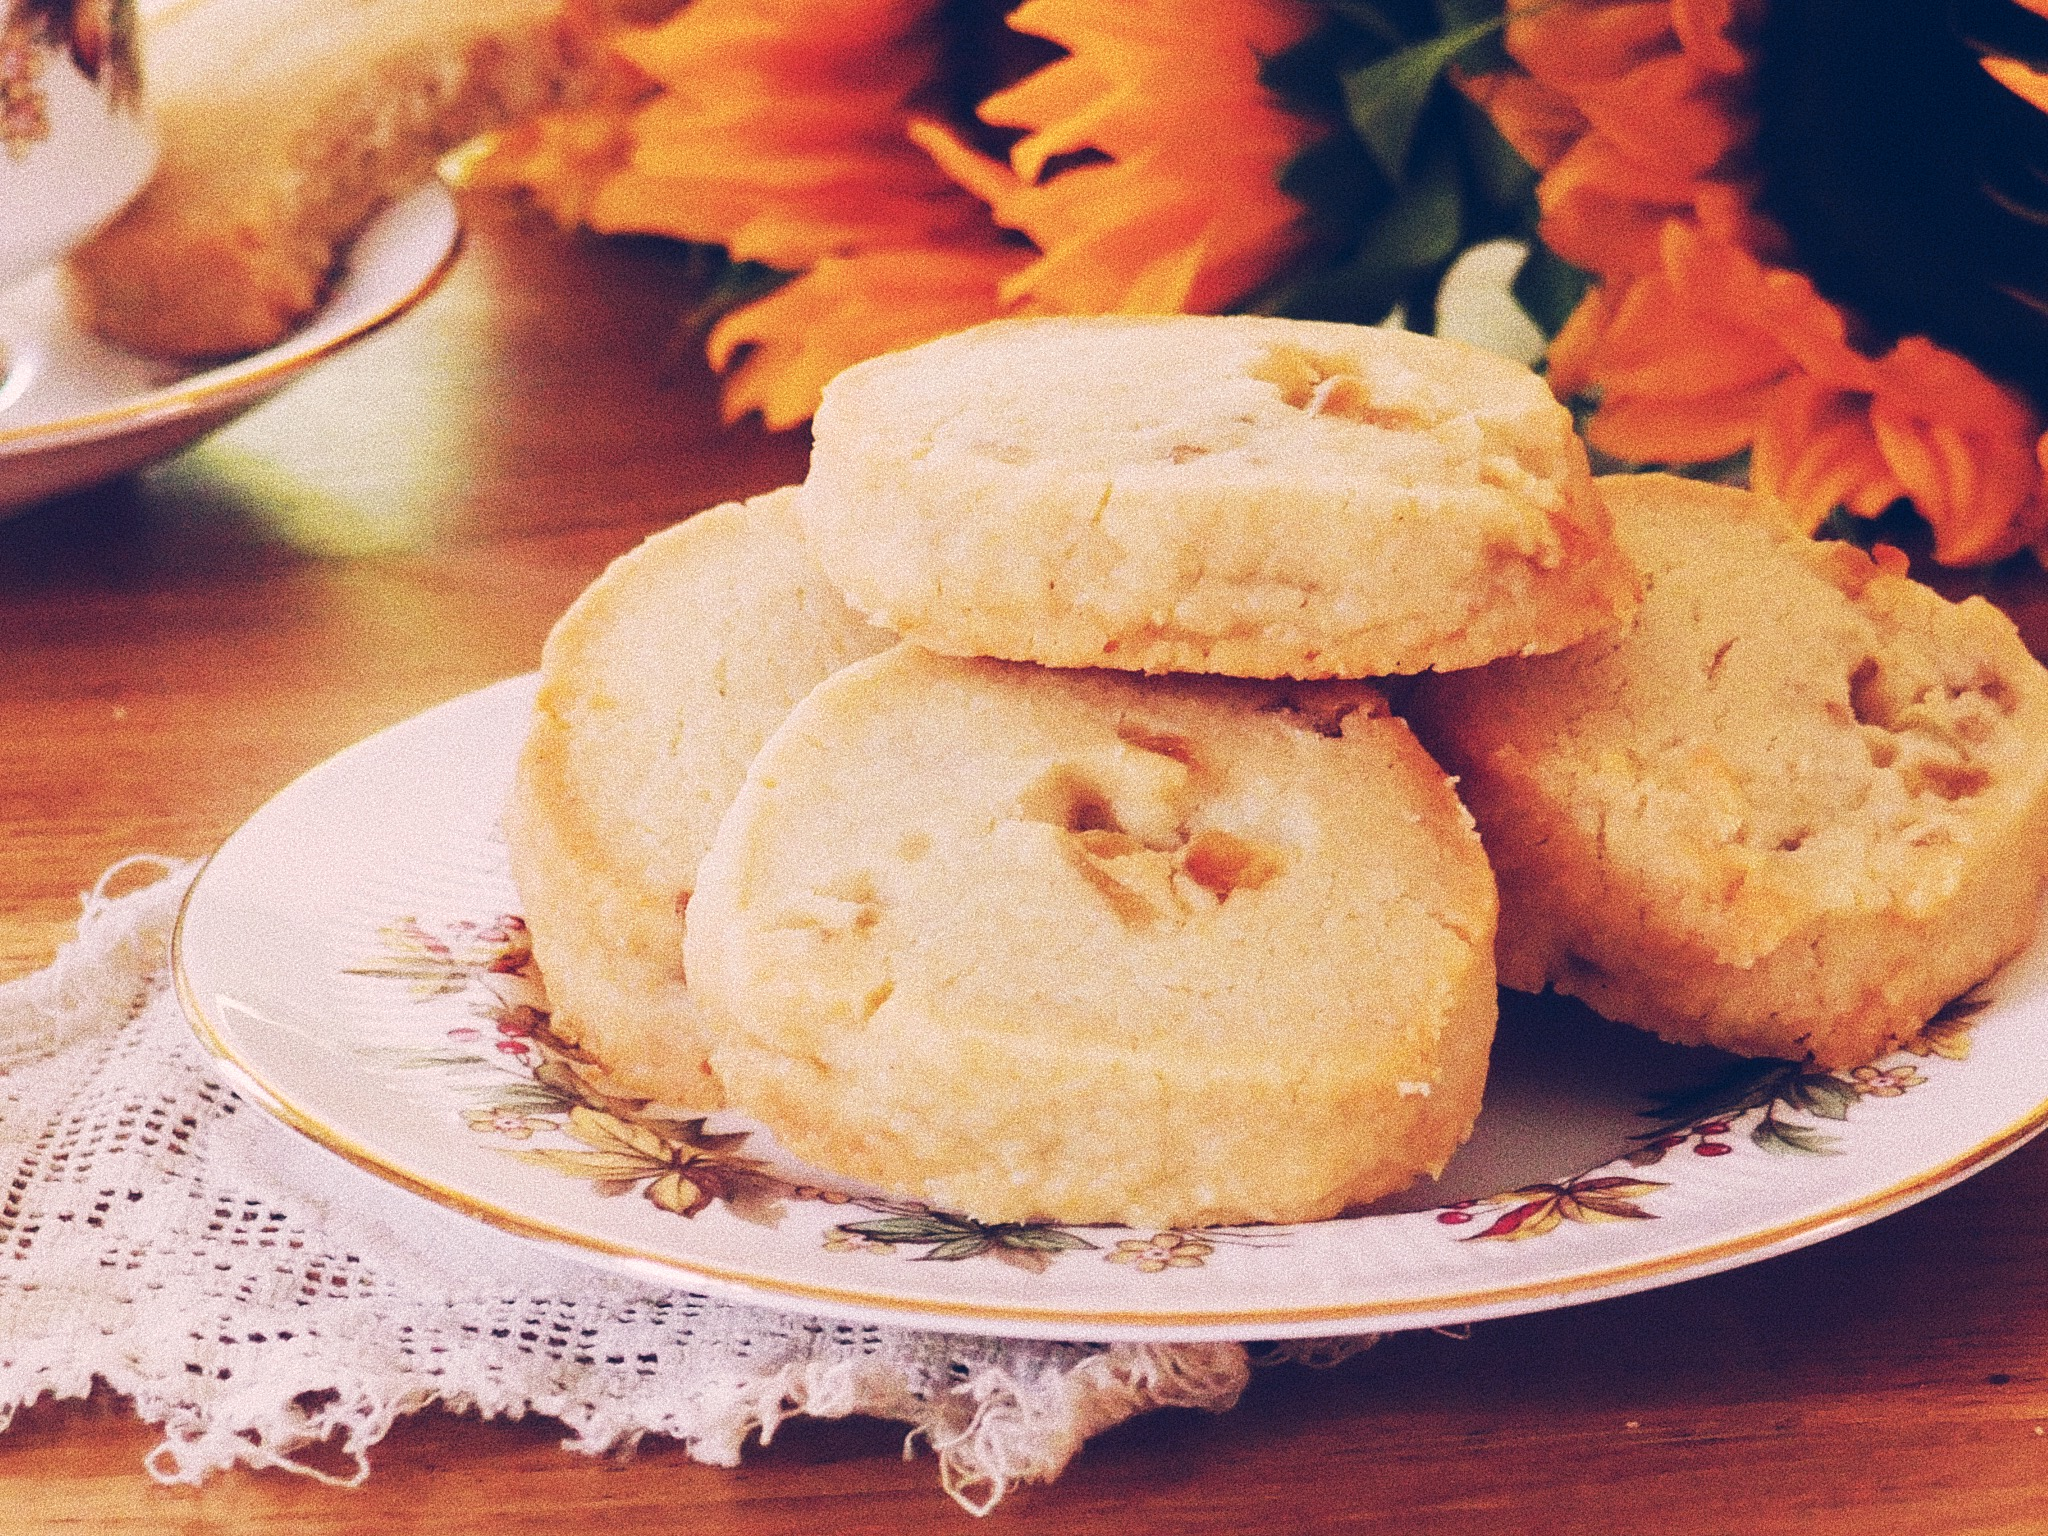 Ginger shortbread biscuits on a vintage plate with sunflowers behind